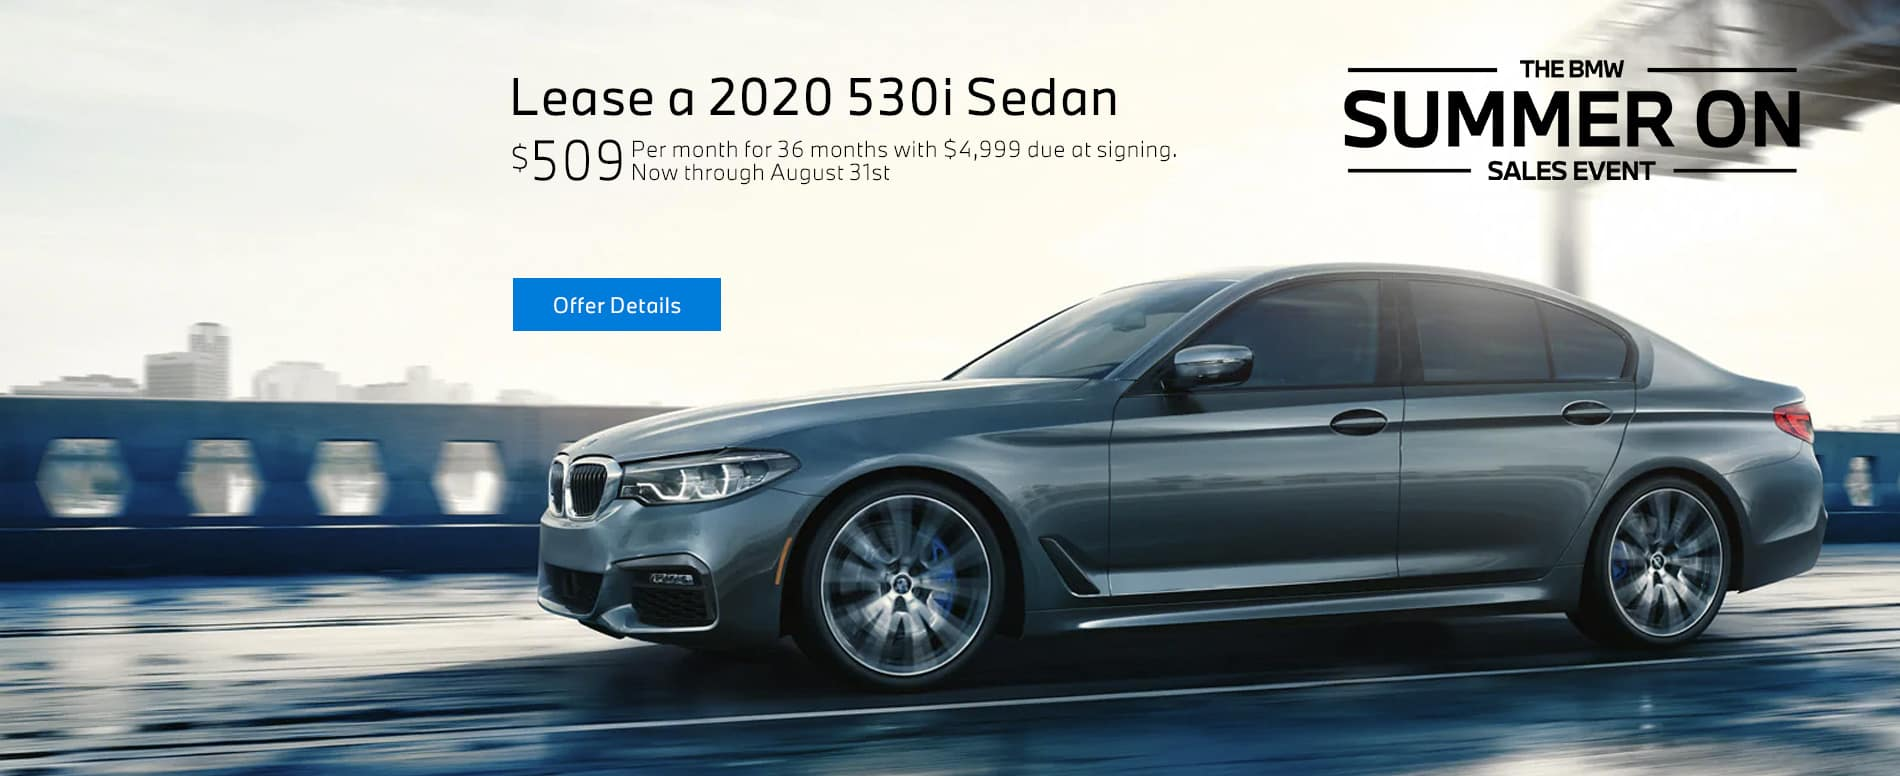 2020 530i Sedan at BMW of Fort Walton Beach